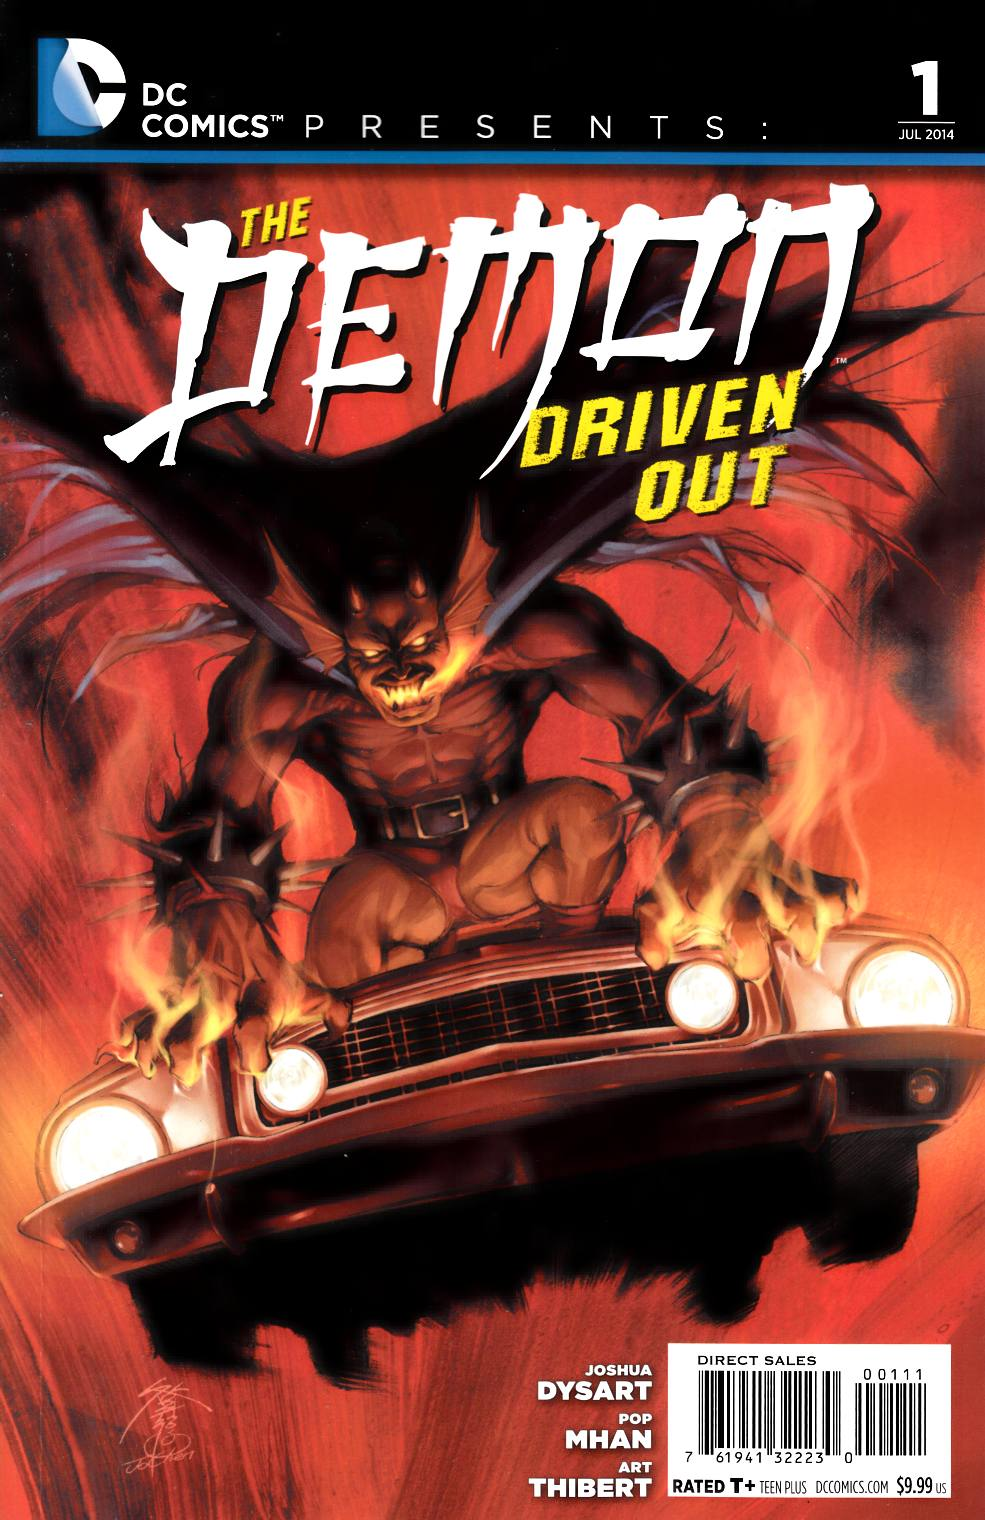 DC Comics Presents the Demon Driven Out #1 [DC Comic] THUMBNAIL